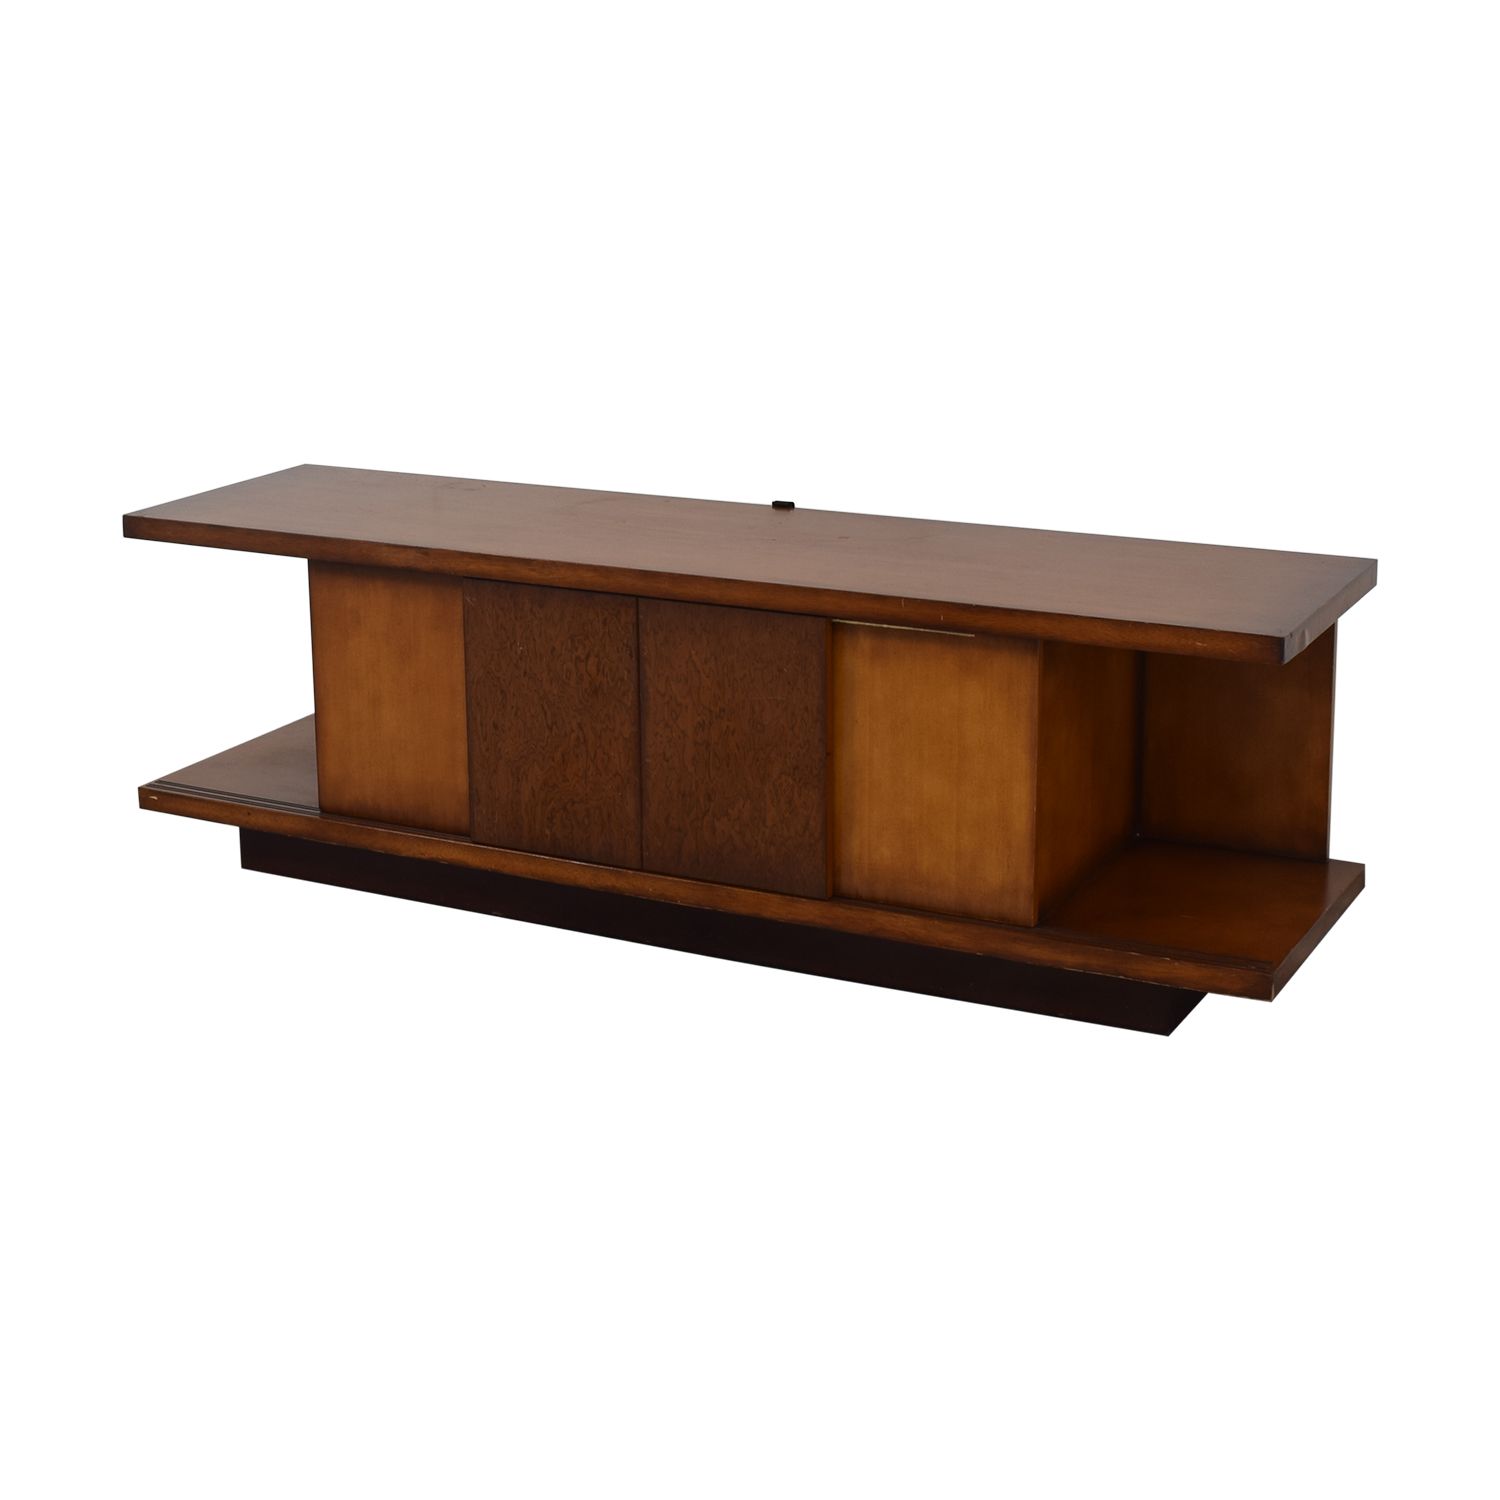 Room & Board Room & Board Mendoza Media Console price